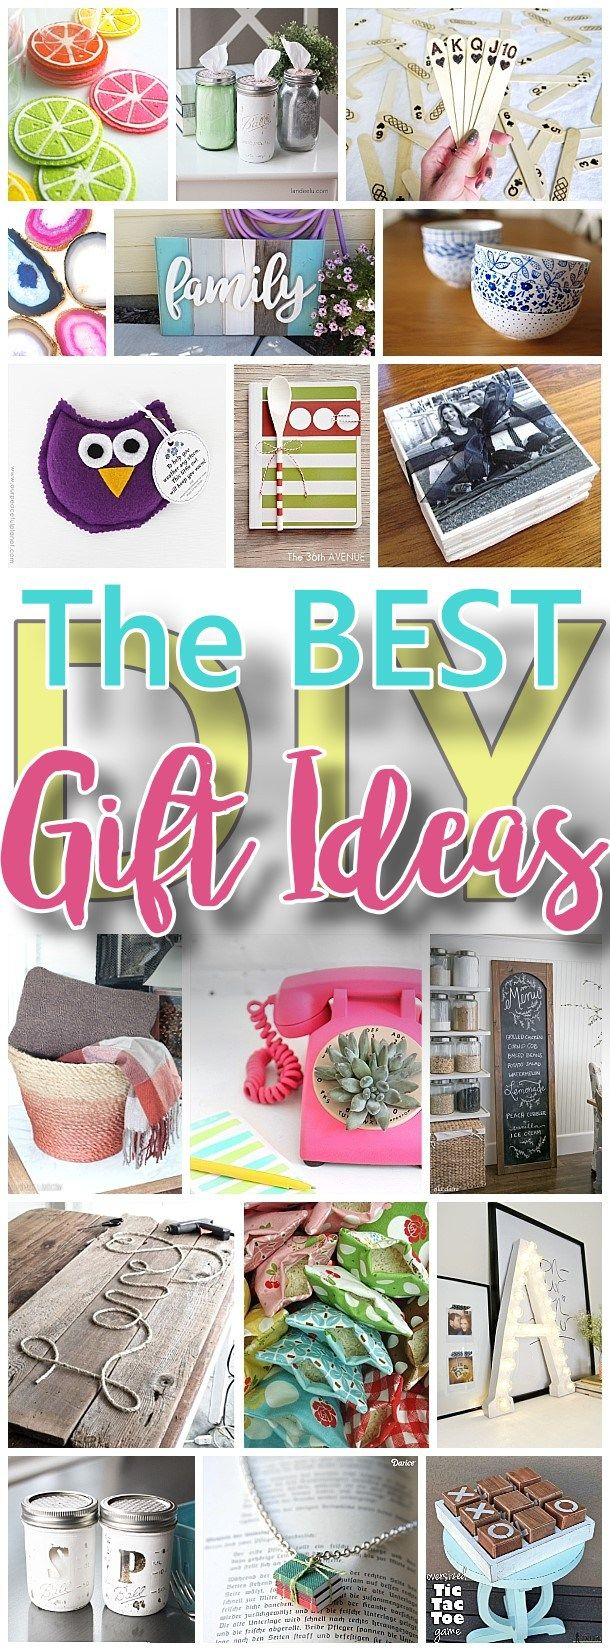 the best diy gifts for teens